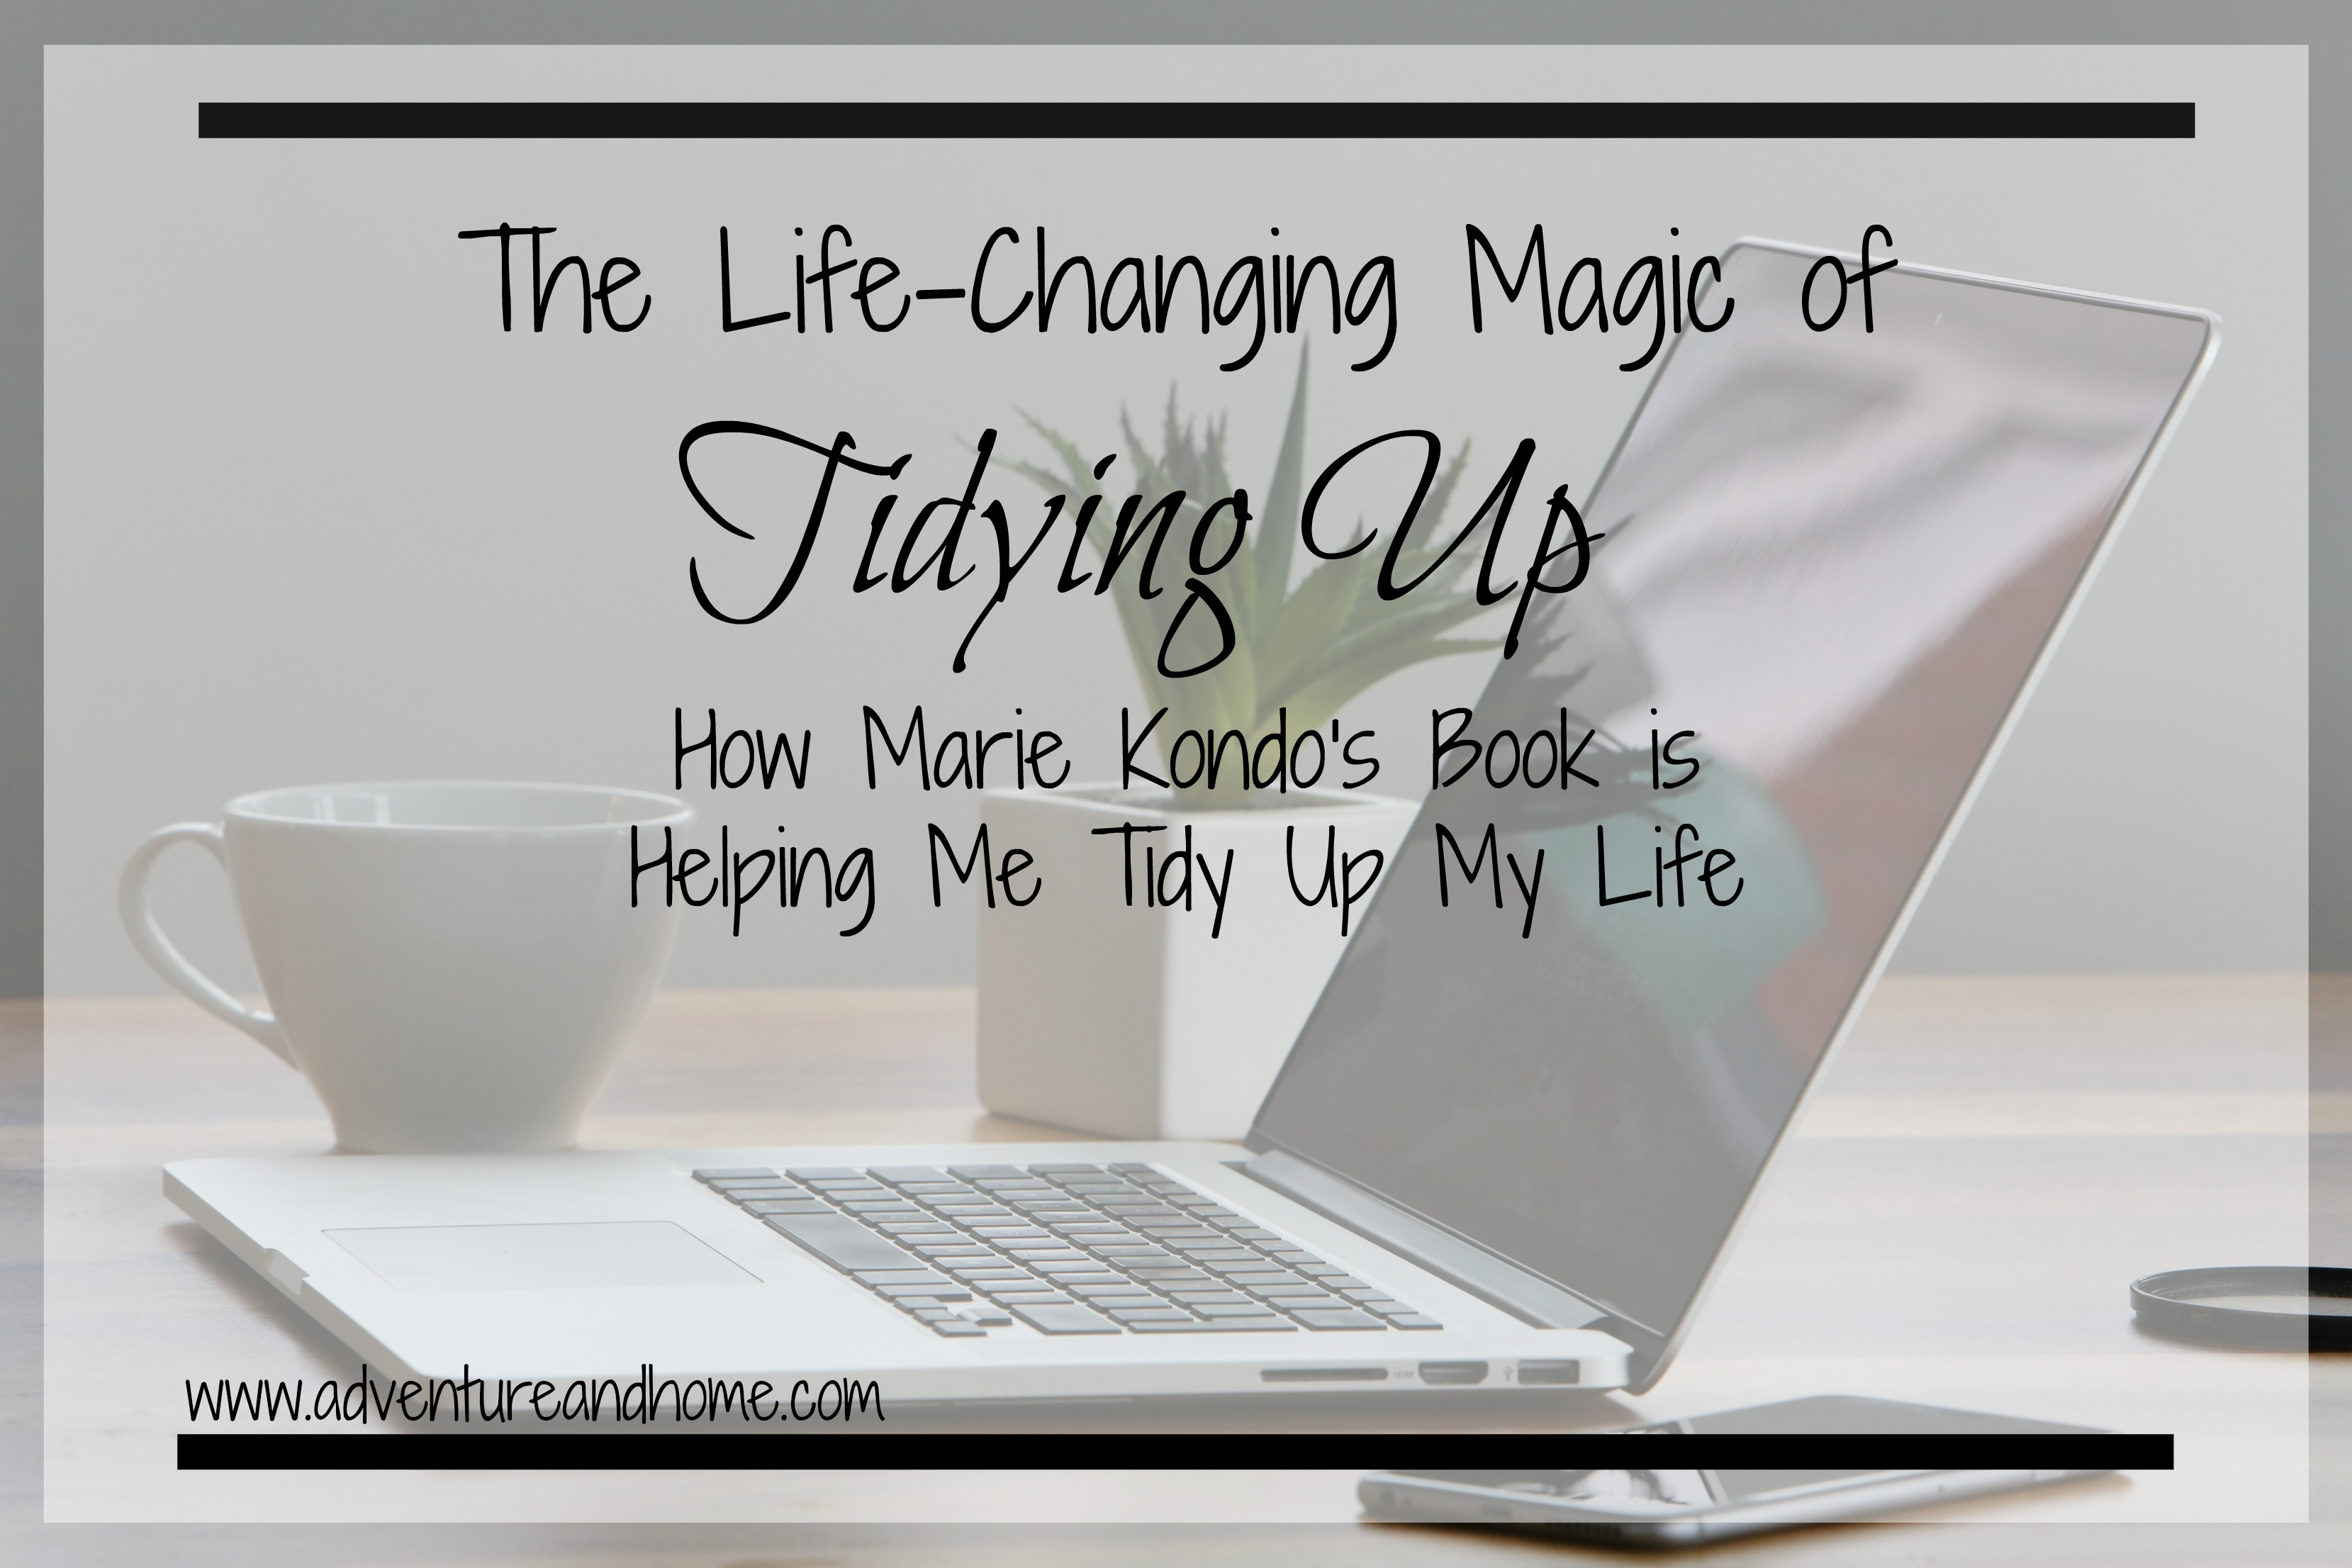 The Life-Changing Magic of Tidying Up (Book Review)